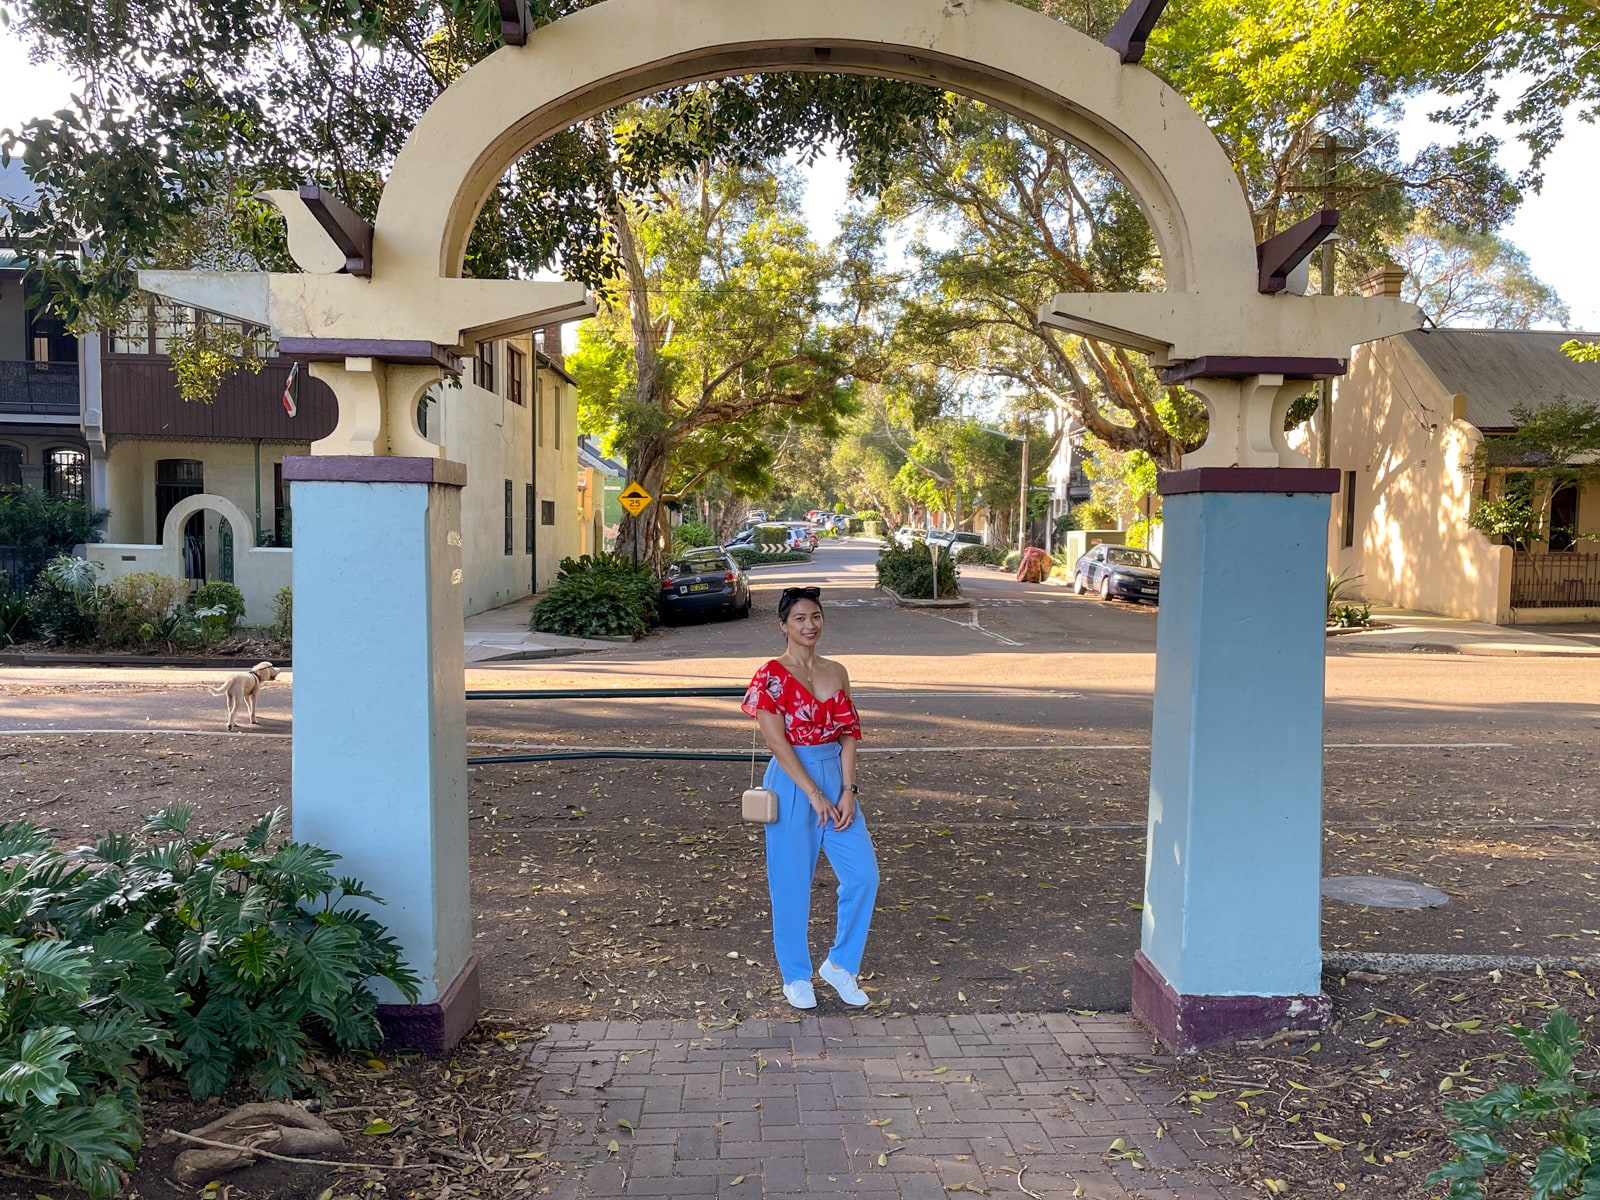 An Asian woman wearing a red top with a floral print, and blue pants, with her hair tied back in a low ponytail. She has white shoes on. One of her knees is bent and her hands are clasped together. She's standing under a concrete arch that marks the entrance to a park. Behind her is a suburban street.